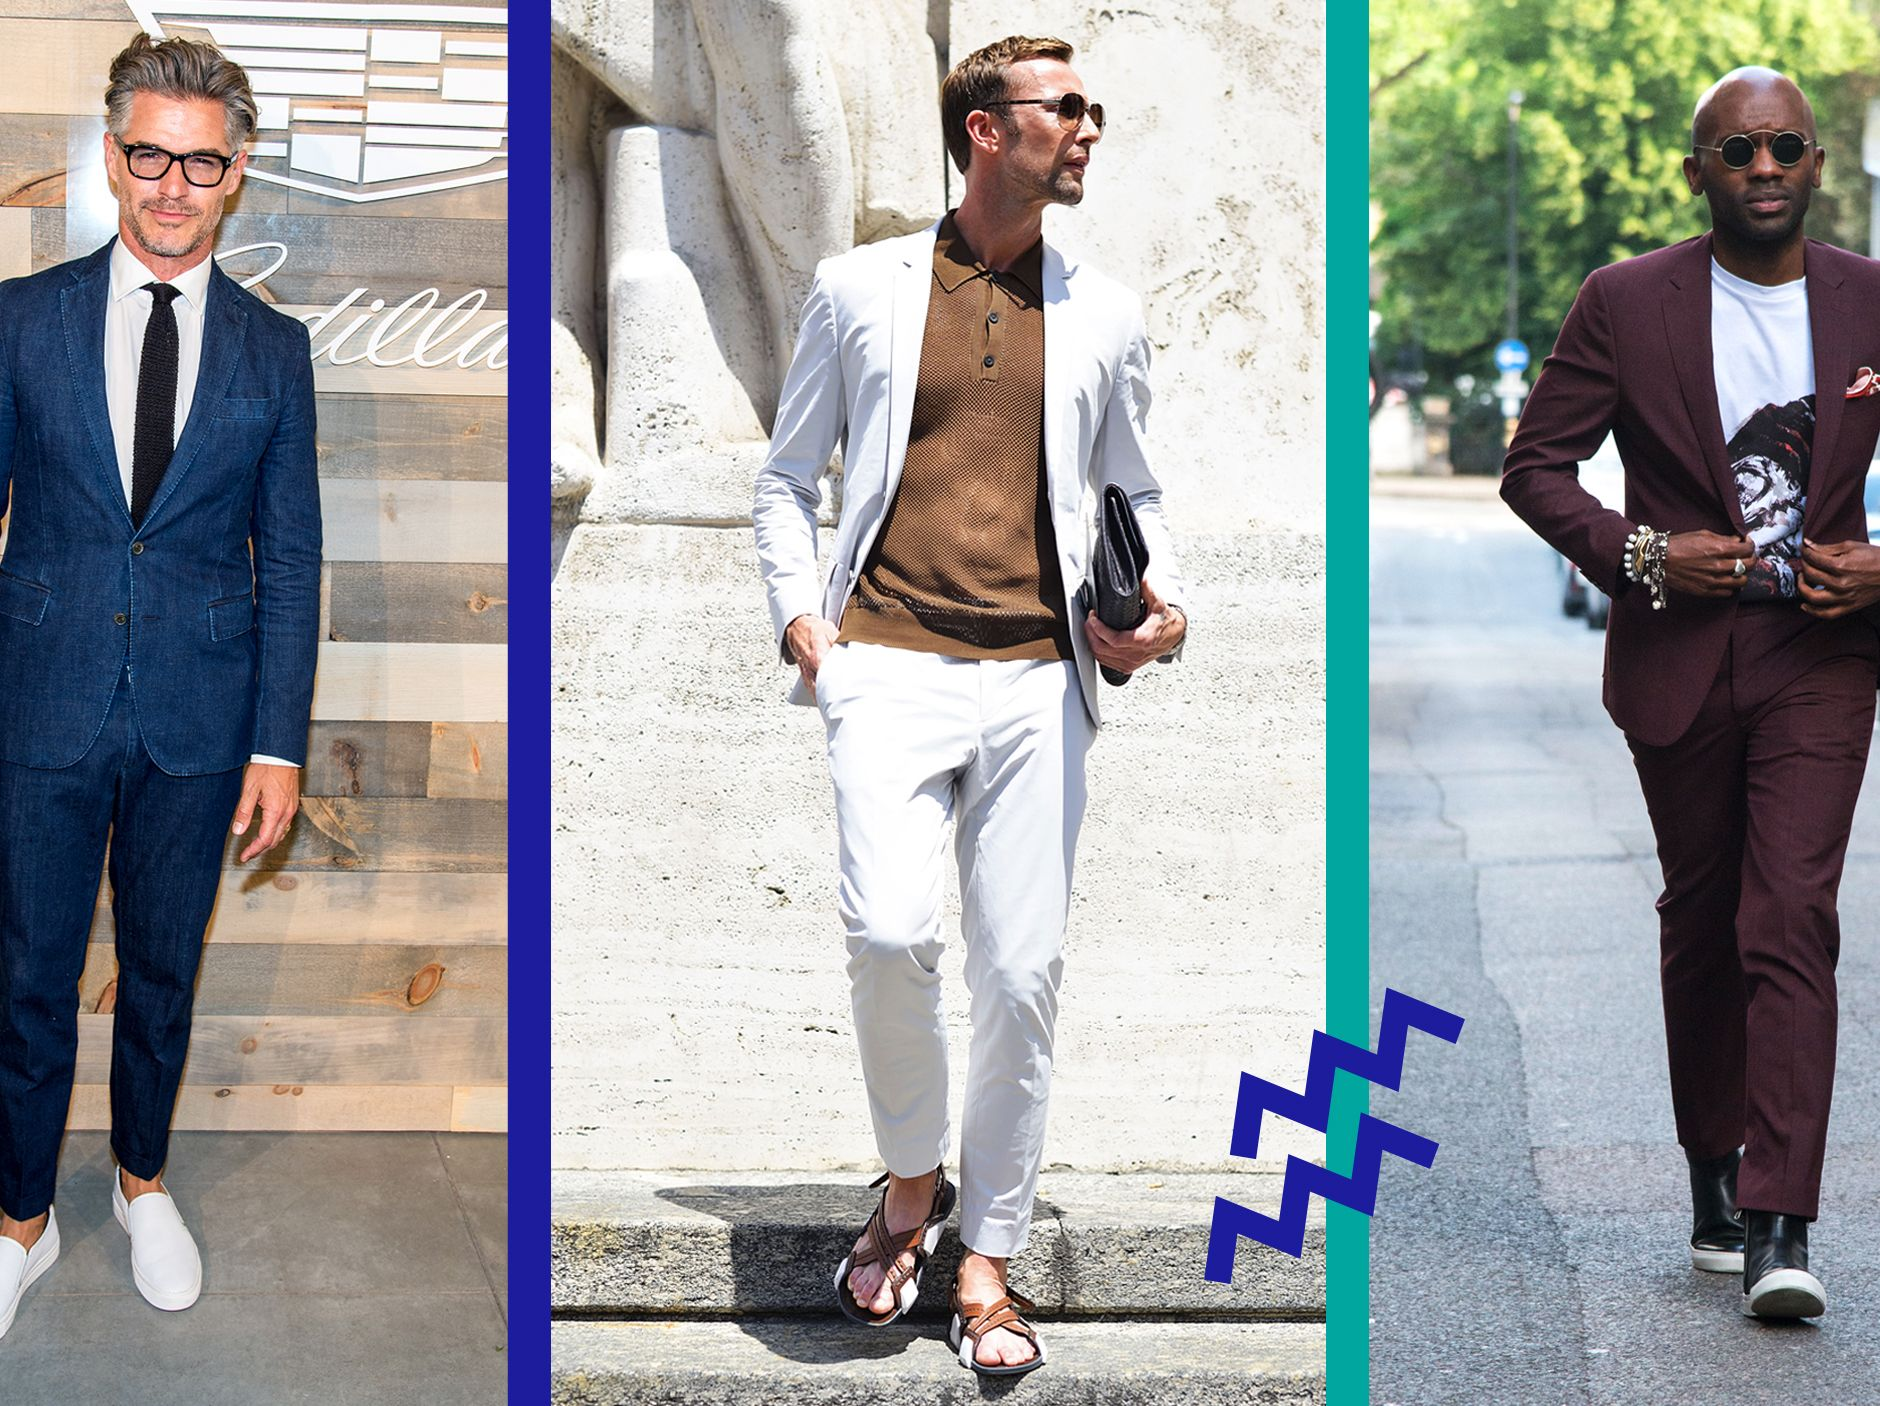 Wedding Attire For Men What To Wear For Every Wedding Dress Code